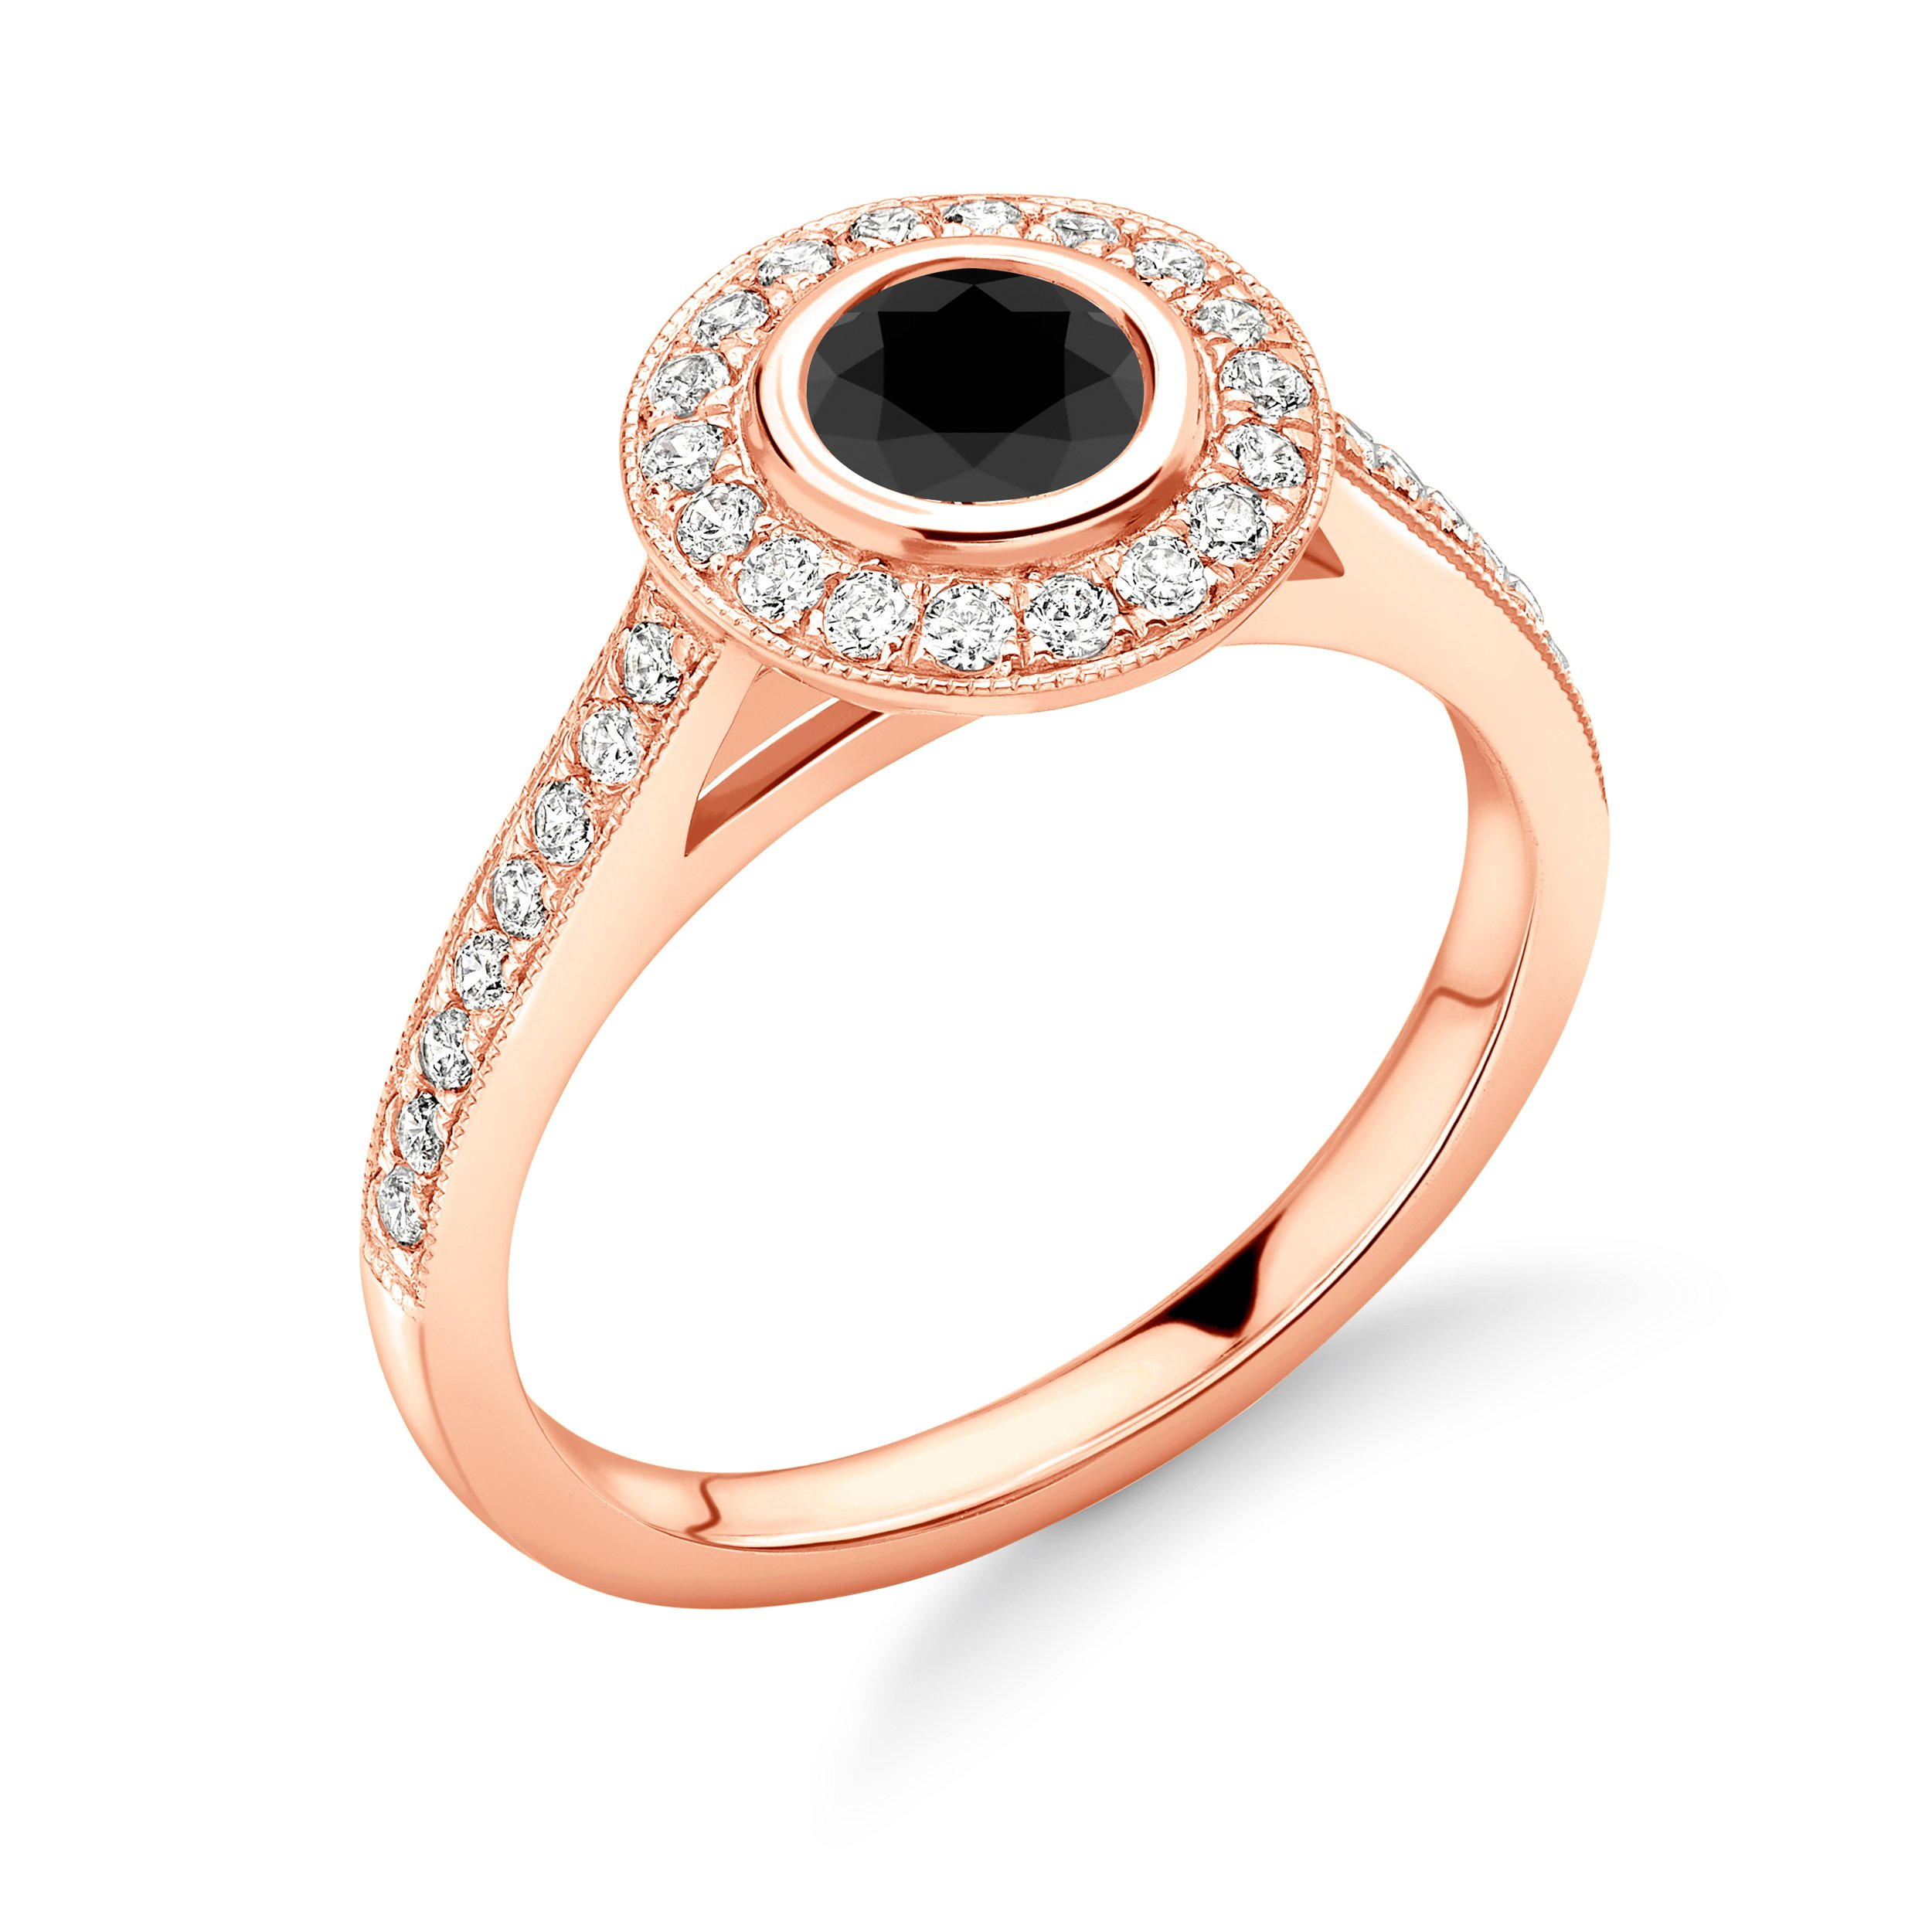 Bezel Setting With Miligrain Edge Halo Engagement Ring With Black Diamond